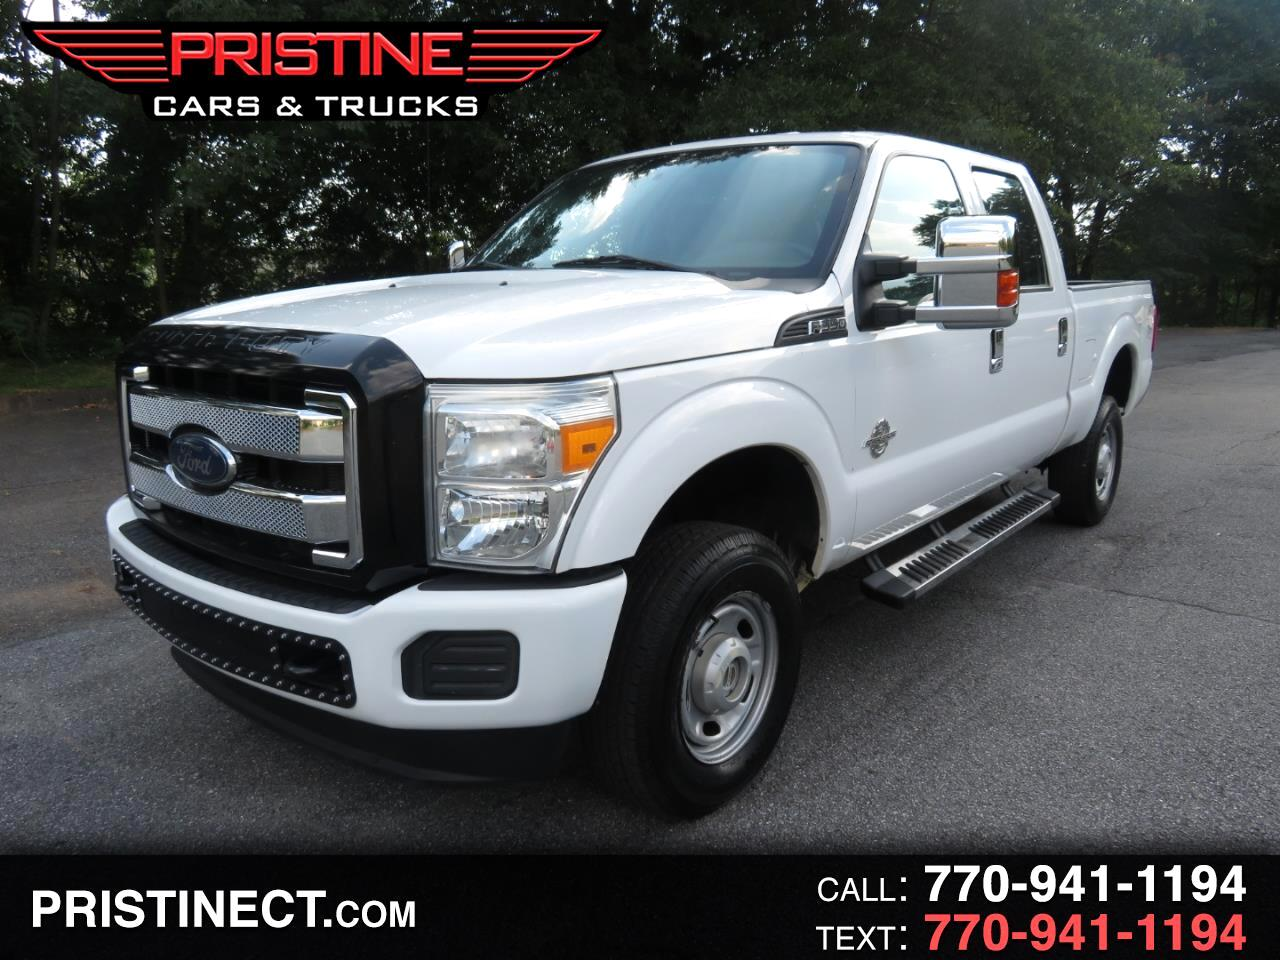 2013 Ford Super Duty F-350 SRW 4WD Crew Cab 172 XL 8 Cylinder Engine Turbo Diesel